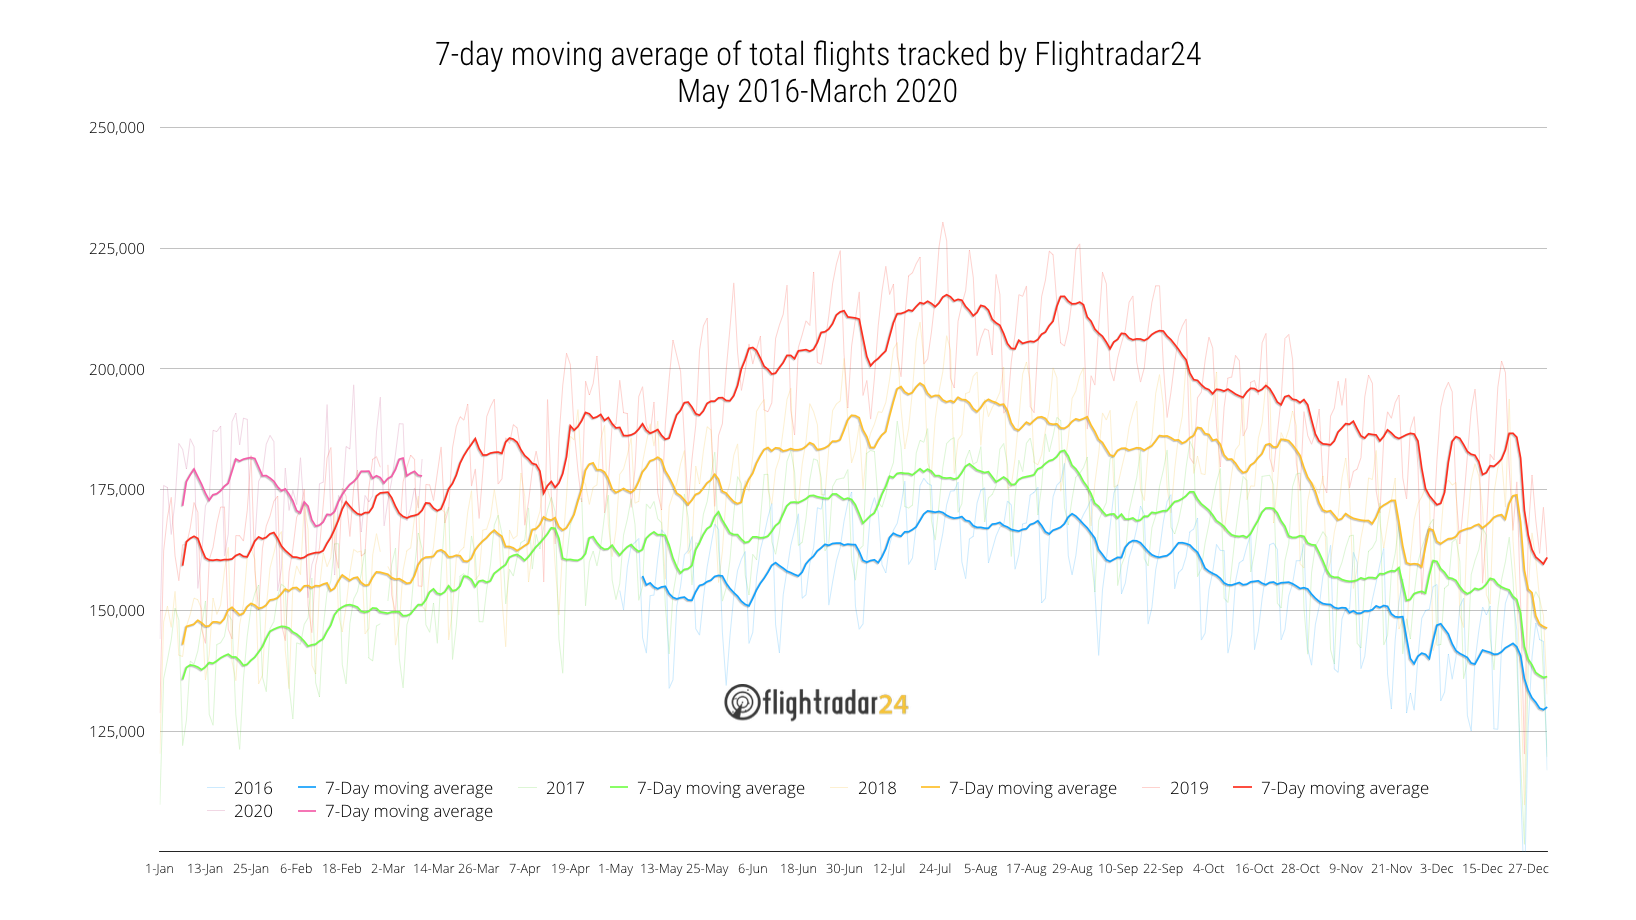 Total flights tracked May 2016 to March 2020